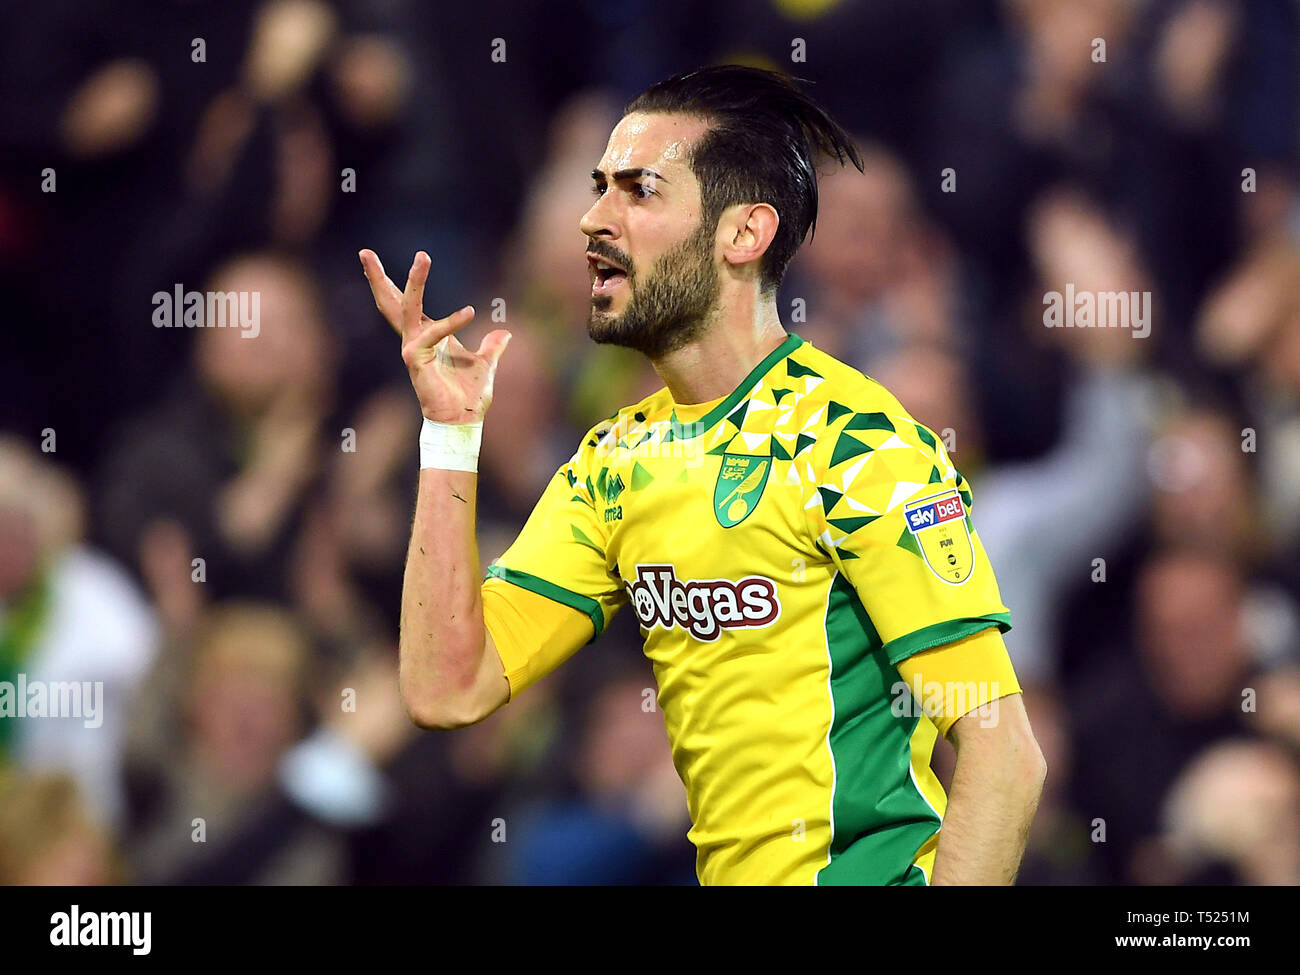 Norwich City's Mario Vrancic celebrates scoring his side's second goal of the game during the Sky Bet Championship match at Carrow Road, Norwich. Stock Photo